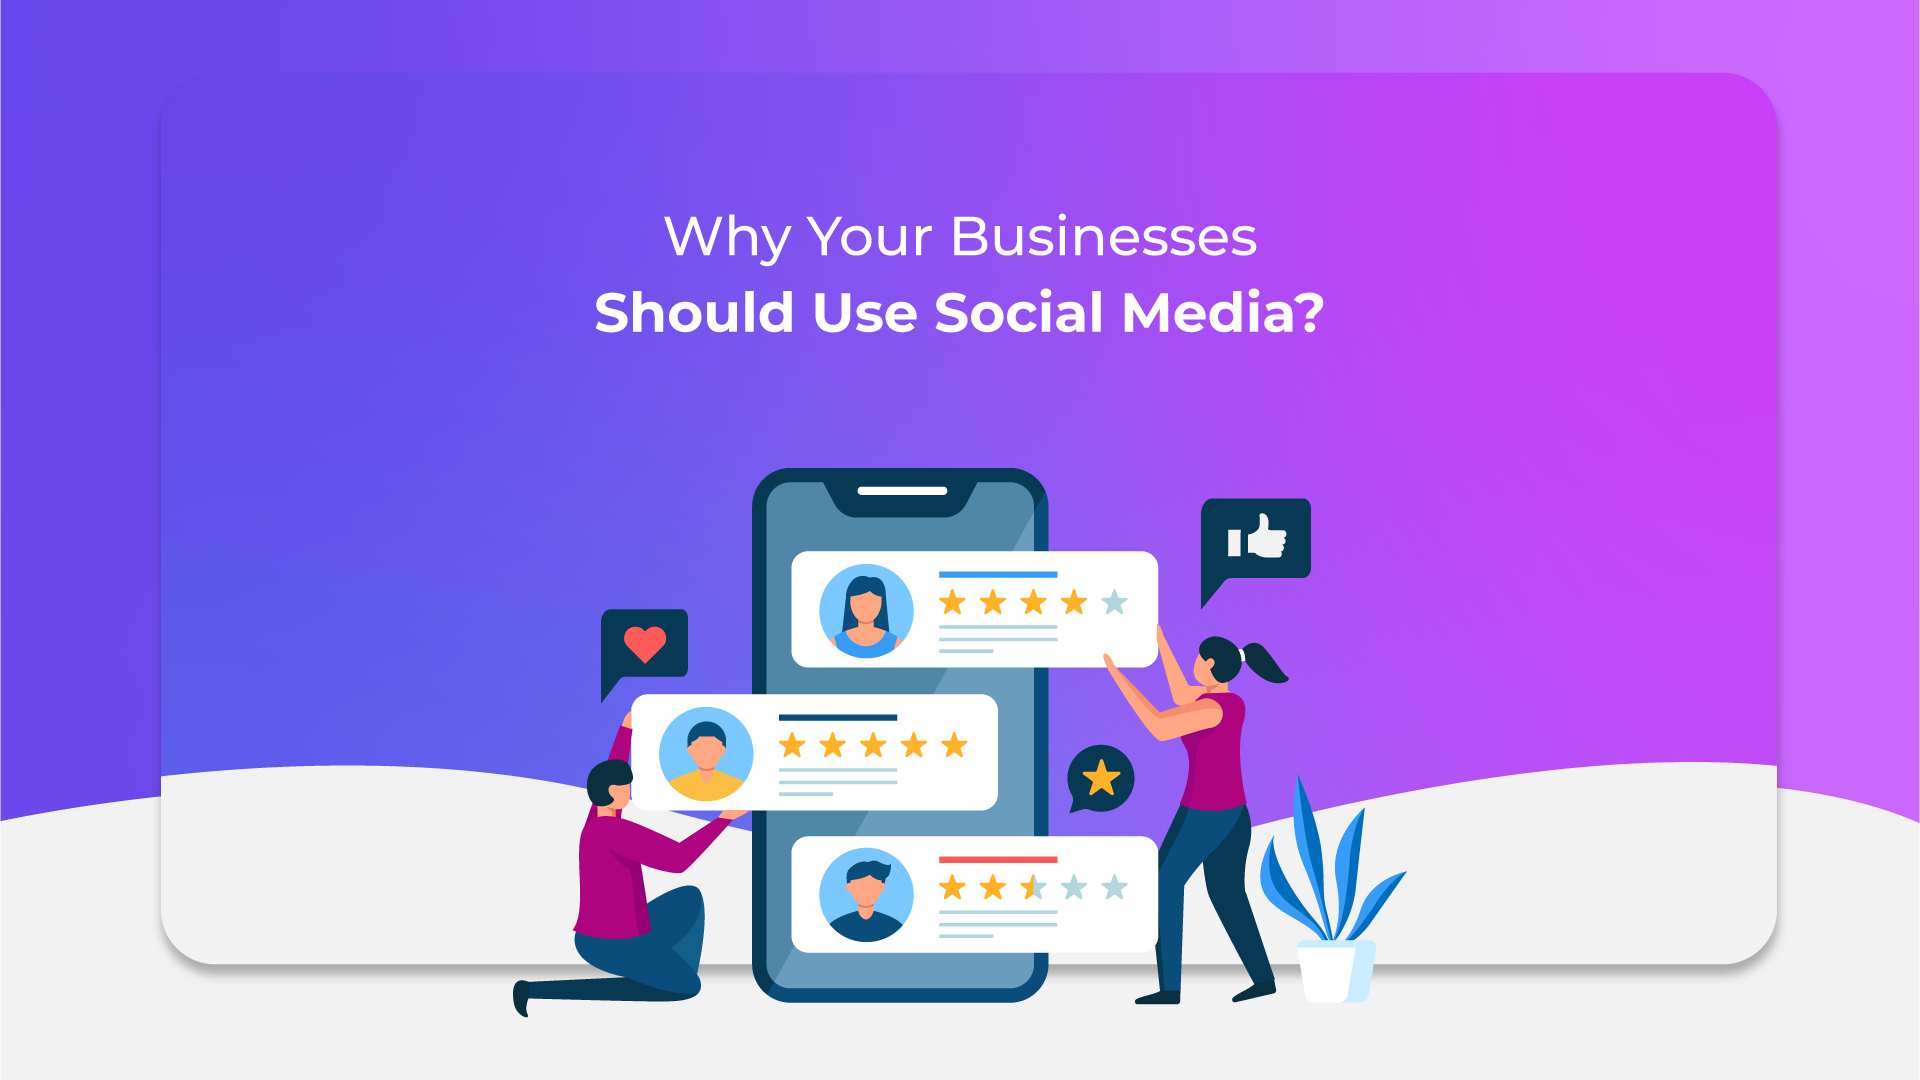 Why Your Businesses Should Use Social Media?